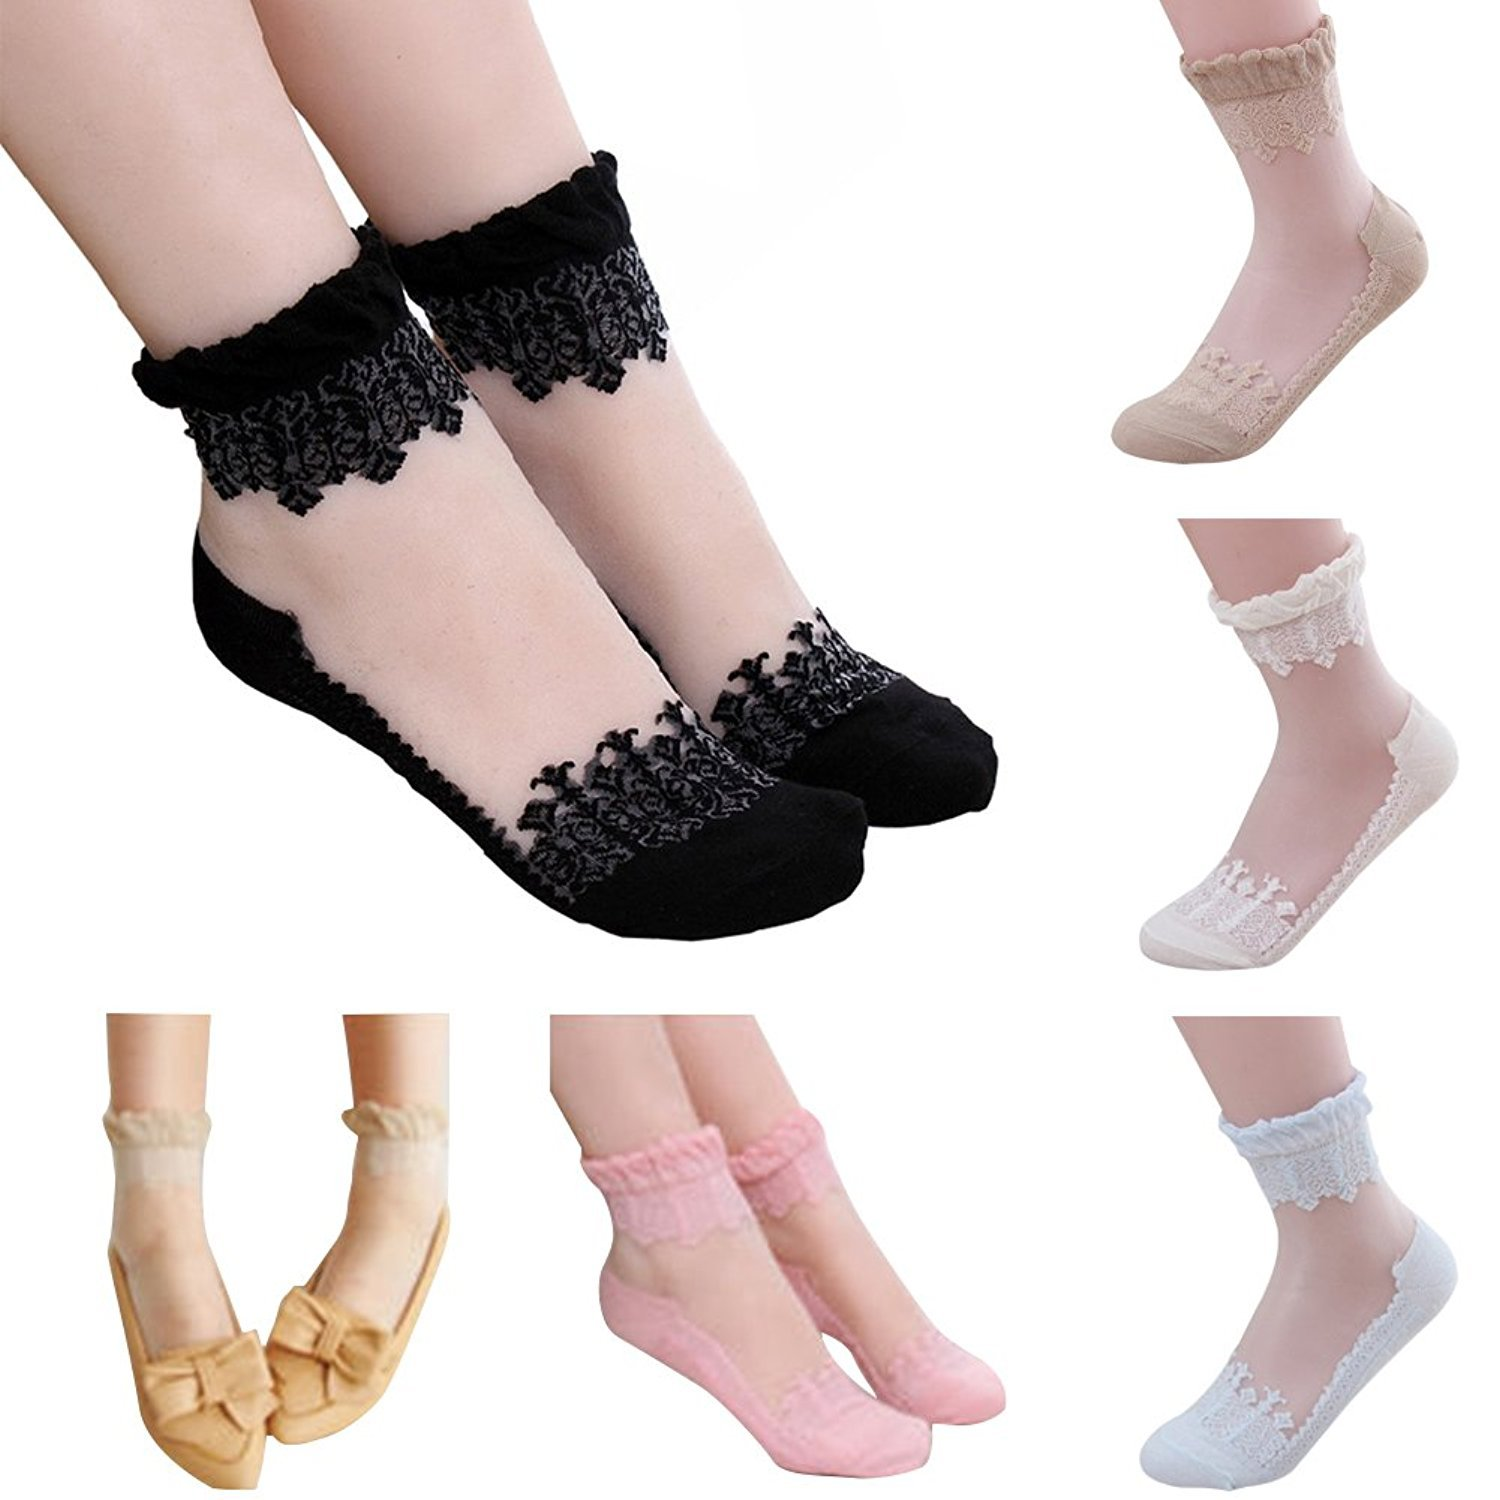 5 Pairs of Women Girl's Anklet Socks Princess Lace Ruffle Frilly Cotton Socks Frilly) Cocobla 001398#8021.ca1